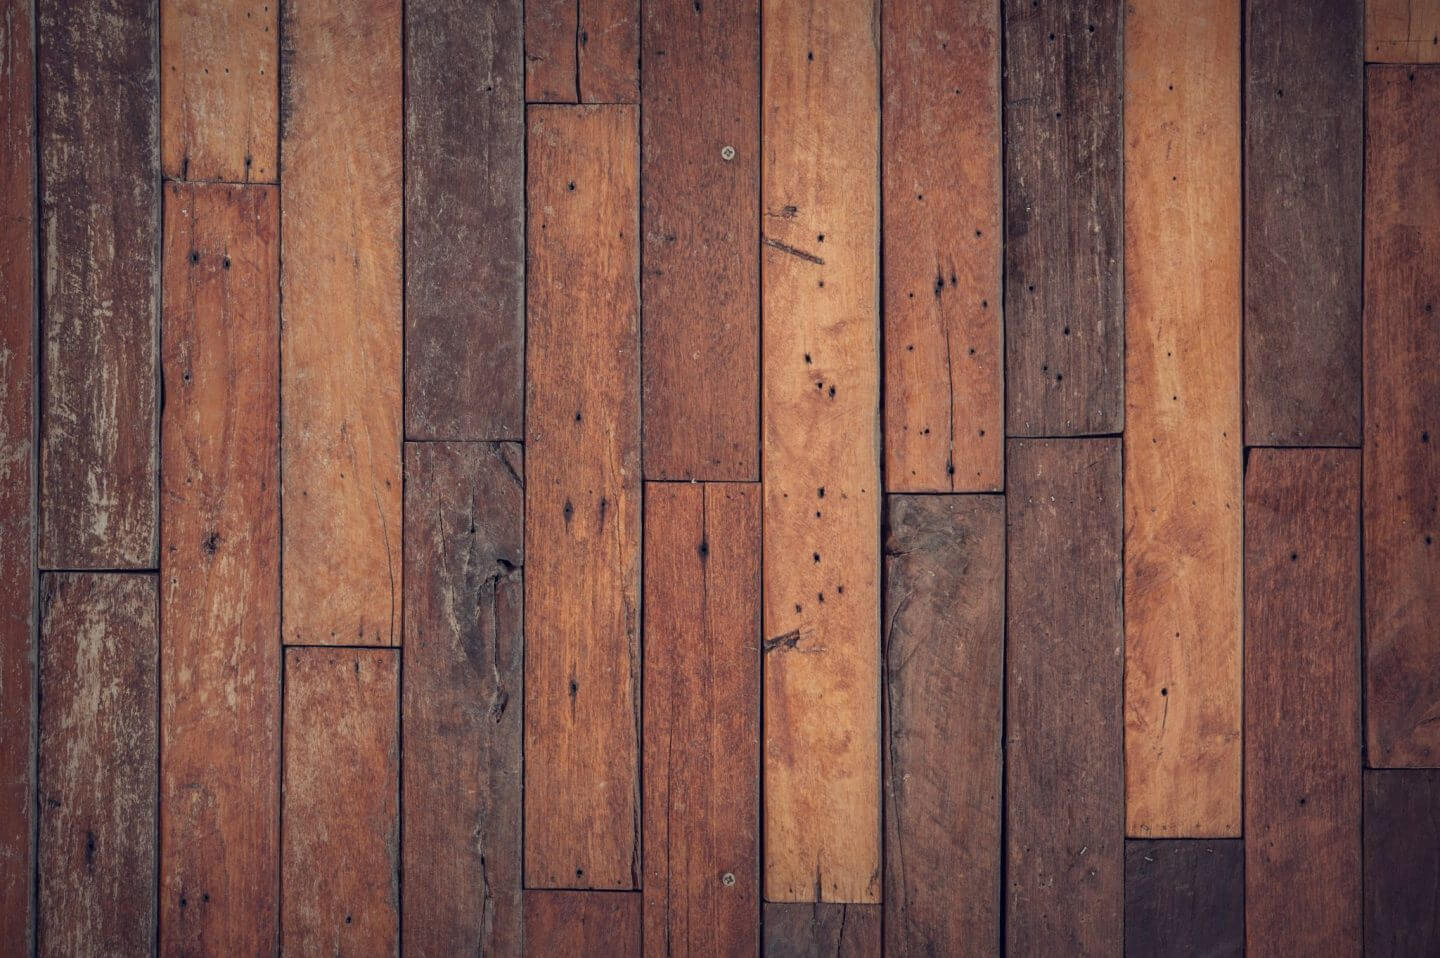 How to freshen up your flooring